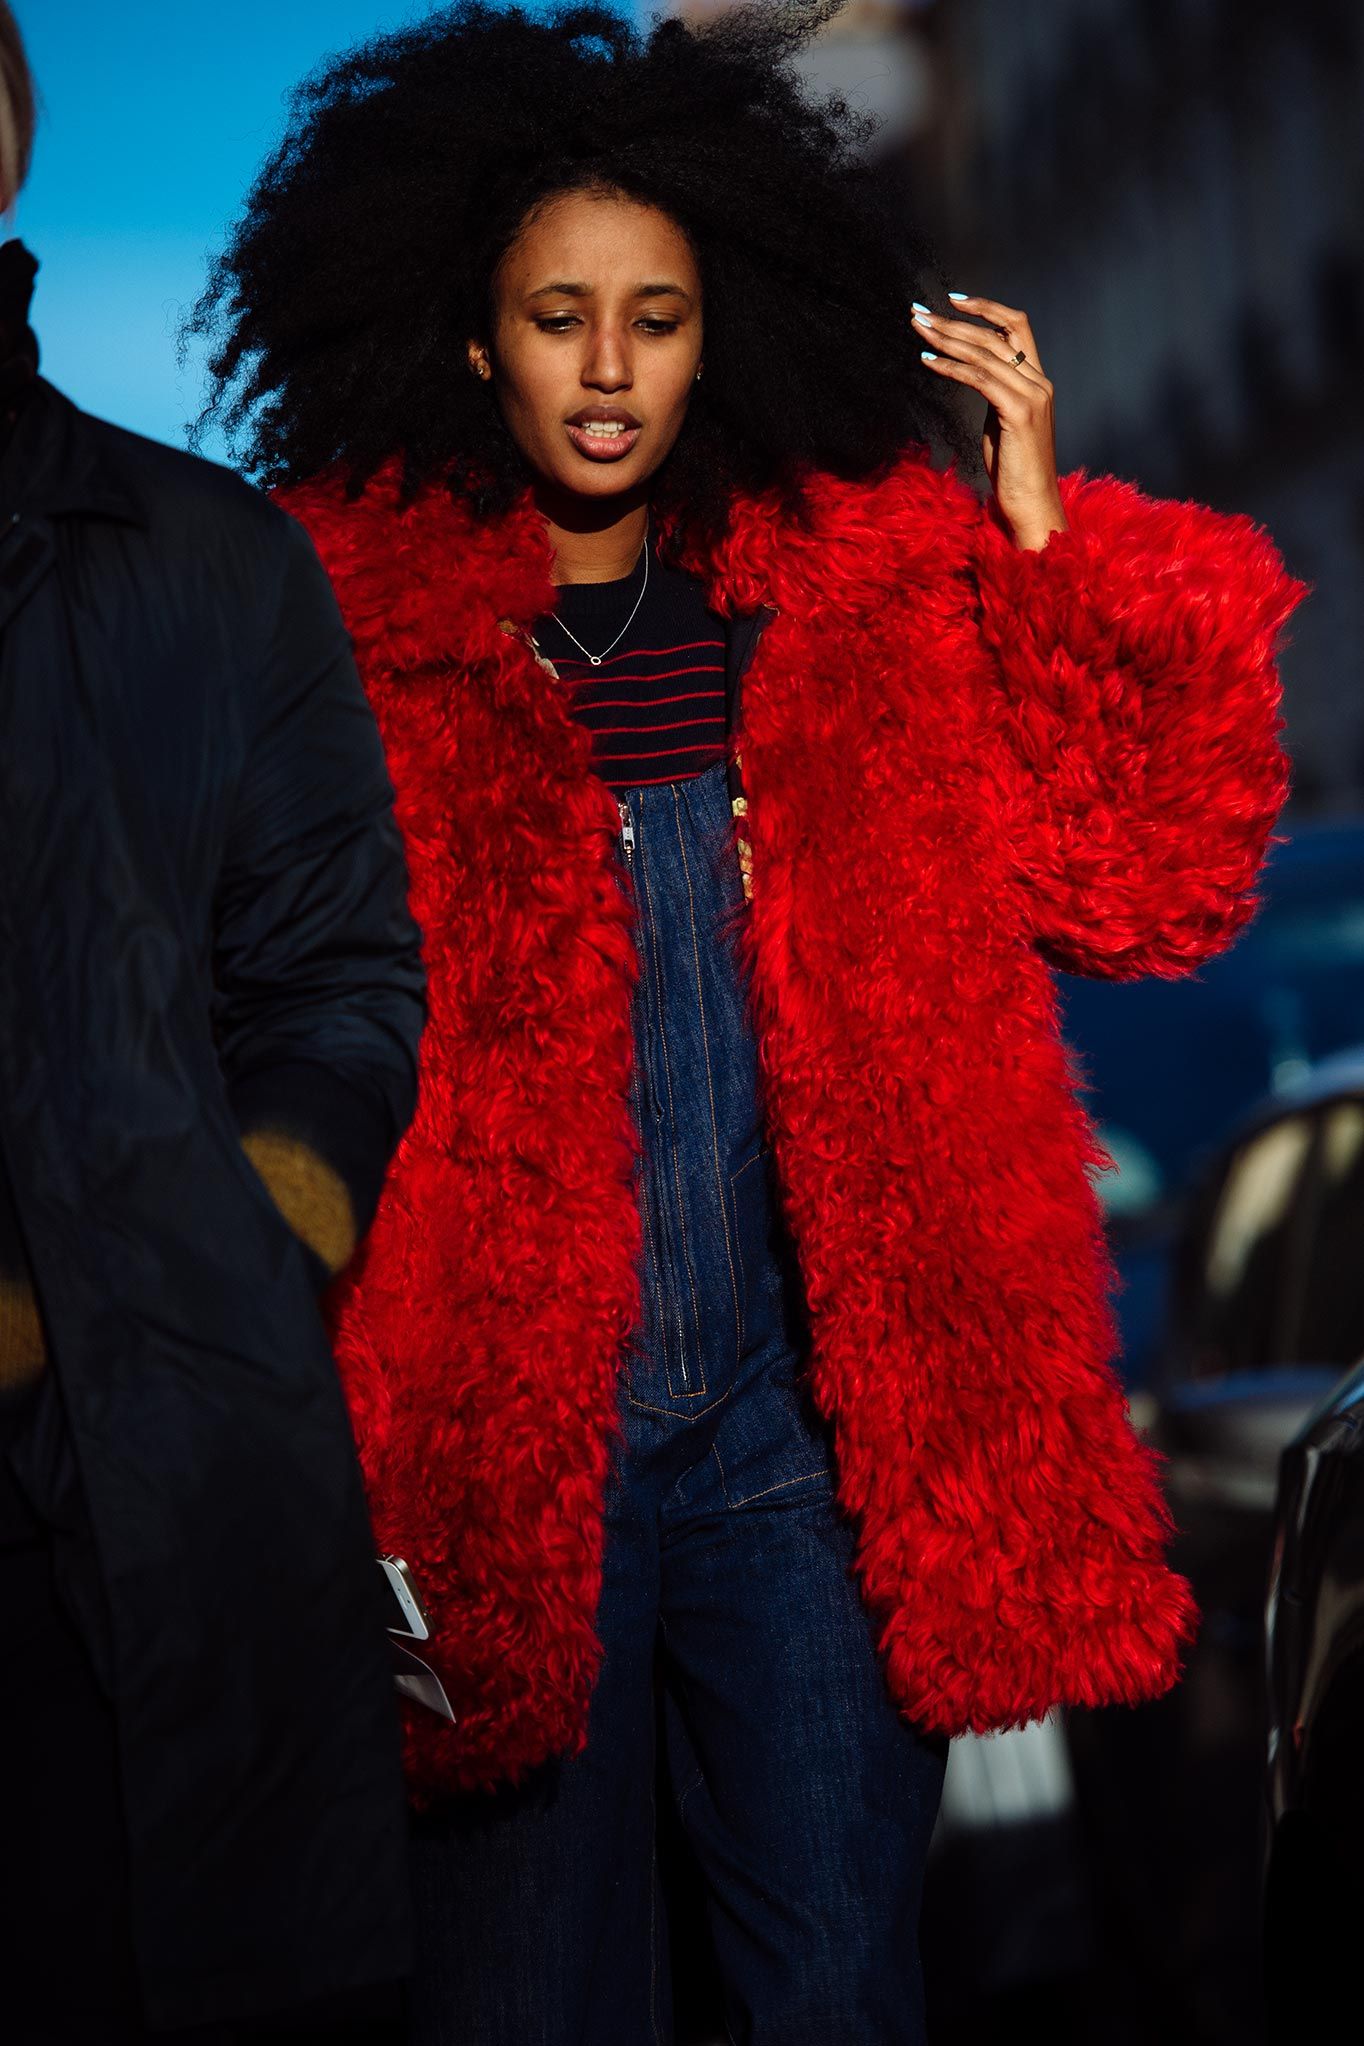 Julia Sarr-Jamois at Paris Fashion Week